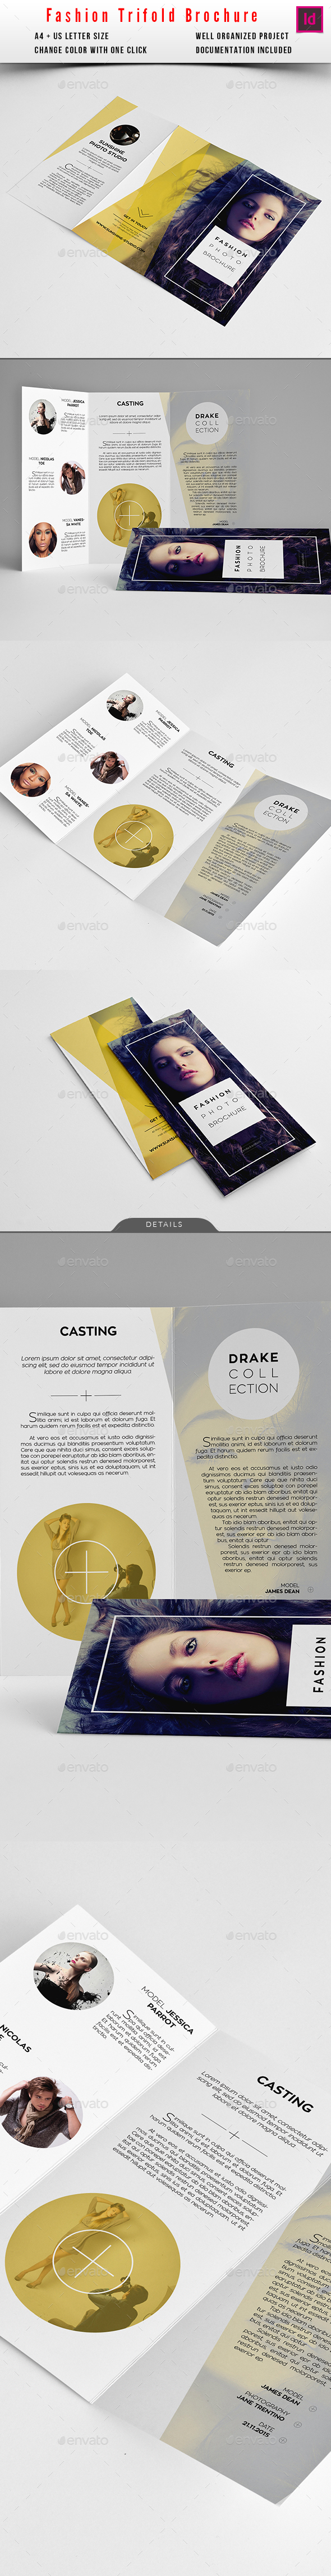 Fashion Trifold Brochure - Informational Brochures